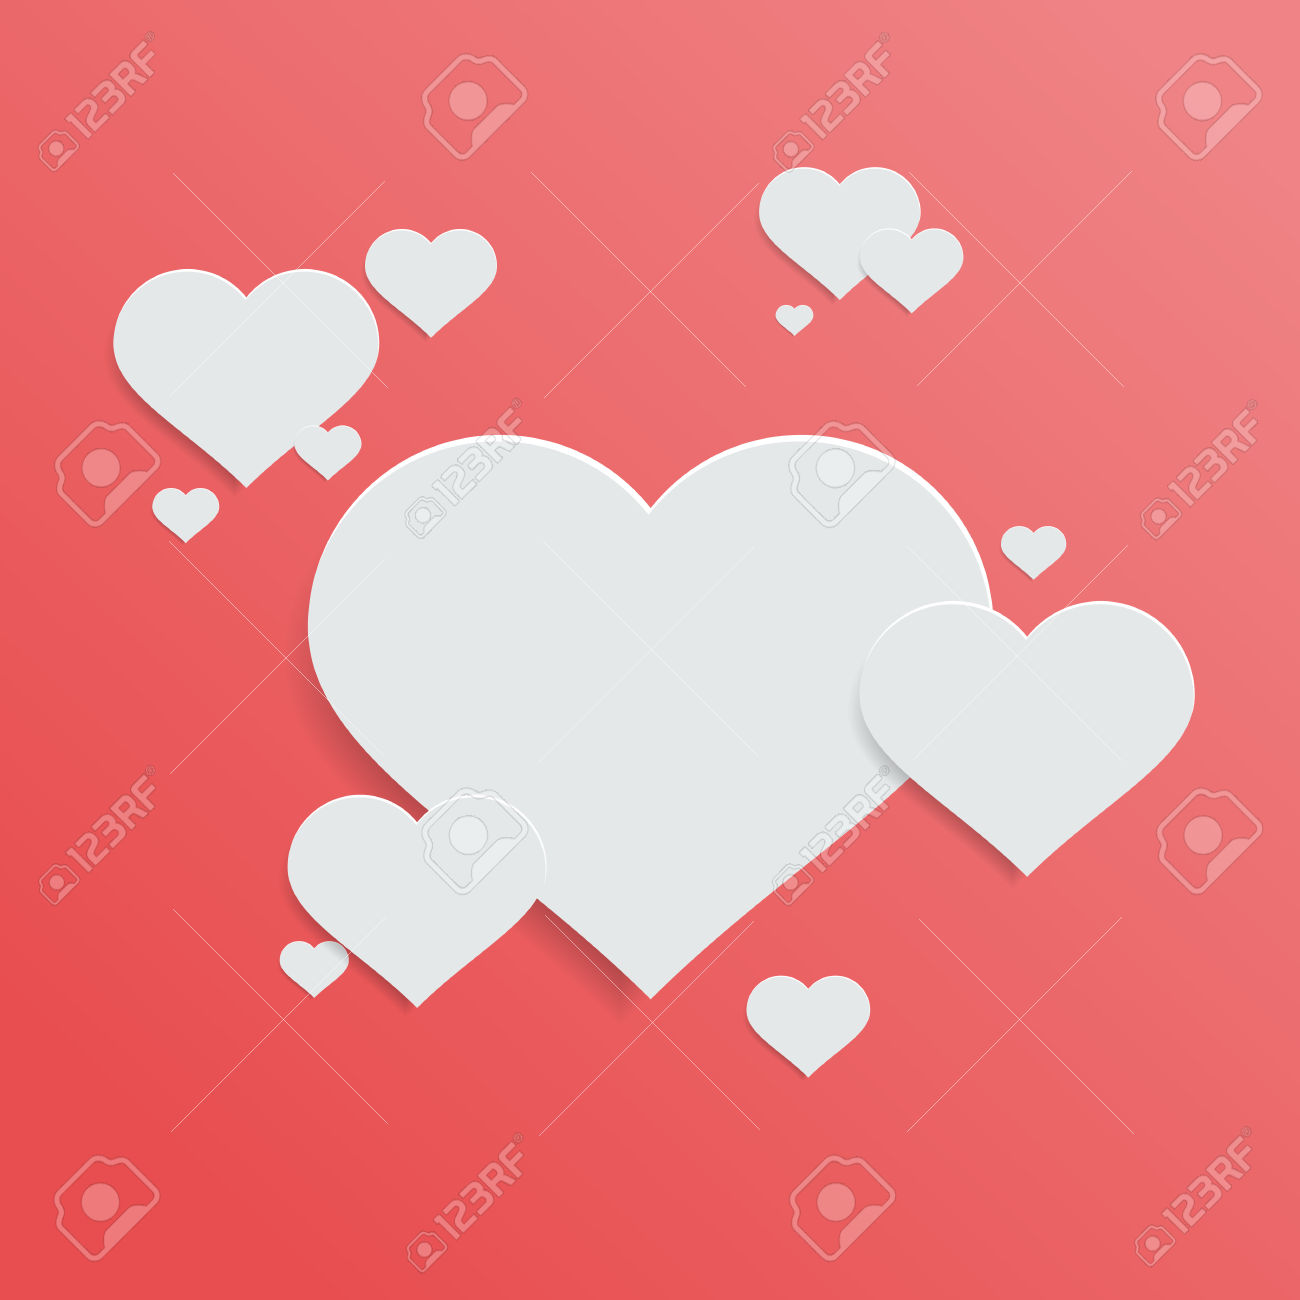 Hearts with shadow background clipart graphic freeuse stock White Paper Love Heart With Shadow On Red Background Royalty Free ... graphic freeuse stock